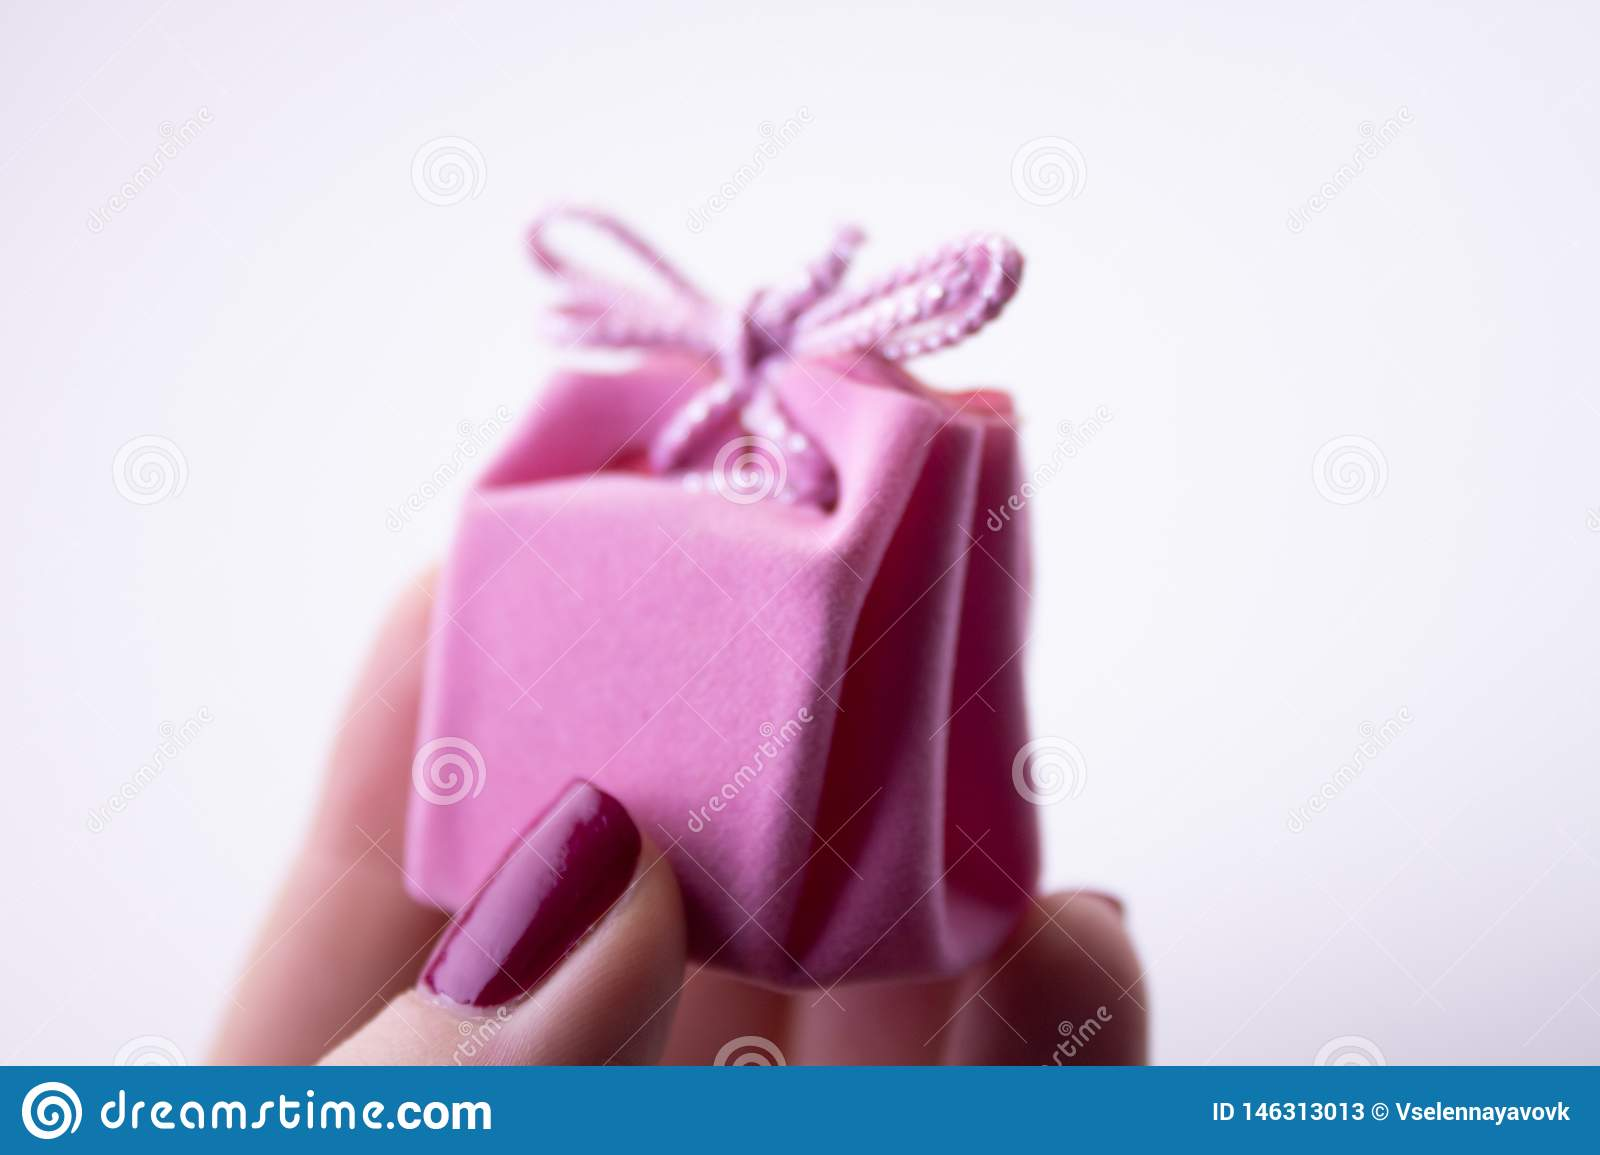 Pink gift box with ribbon for decorations in hand. Festive gift to a girl or woman